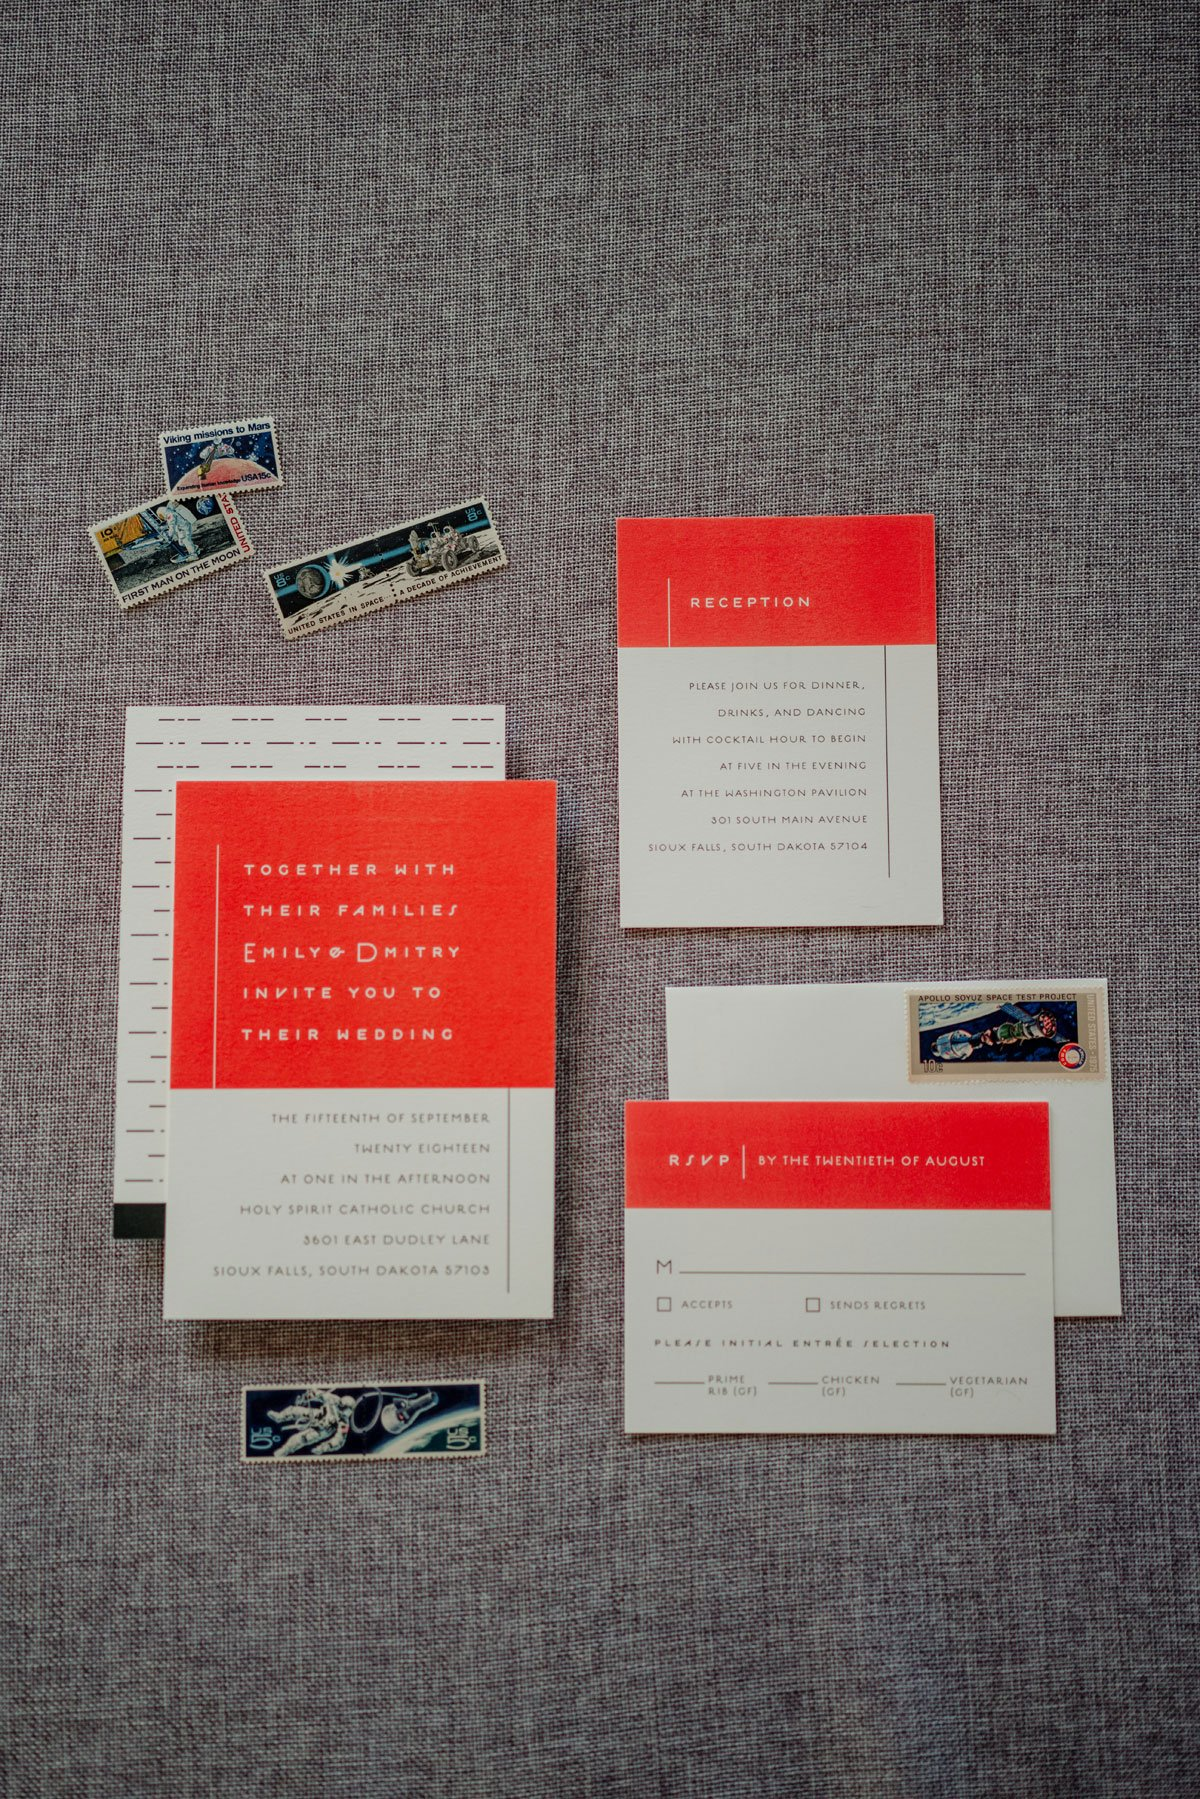 cold war era stamps and space raced themed invitation set